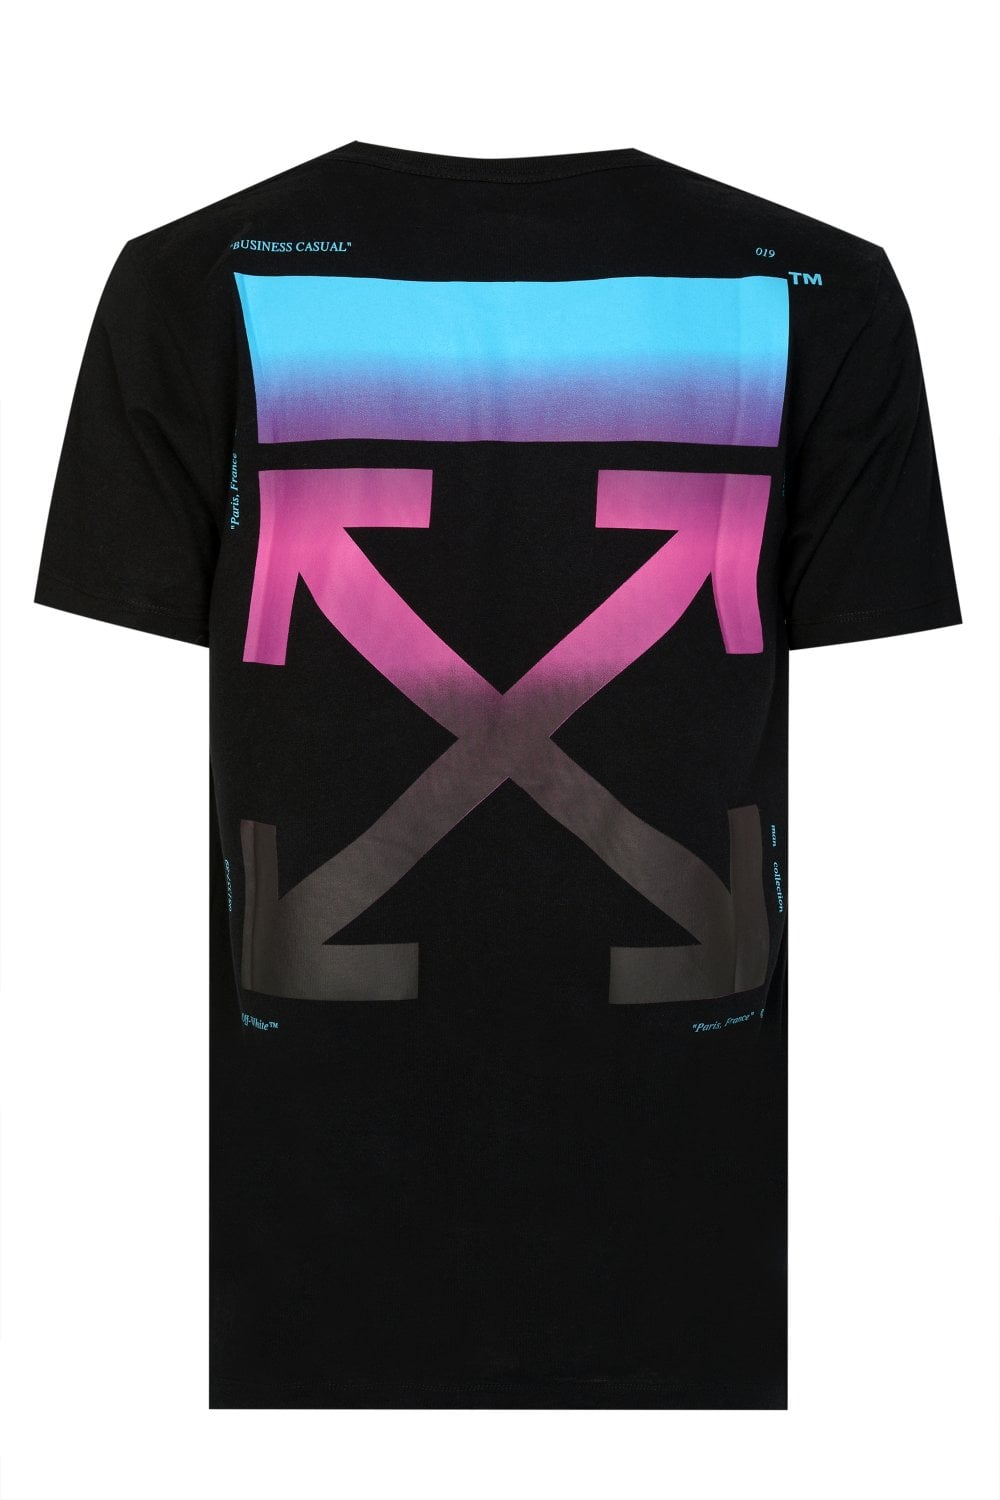 a59fe2238567 OFF WHITE Off-White Gradient Arrows Slim Fit T-shirt - Clothing from ...